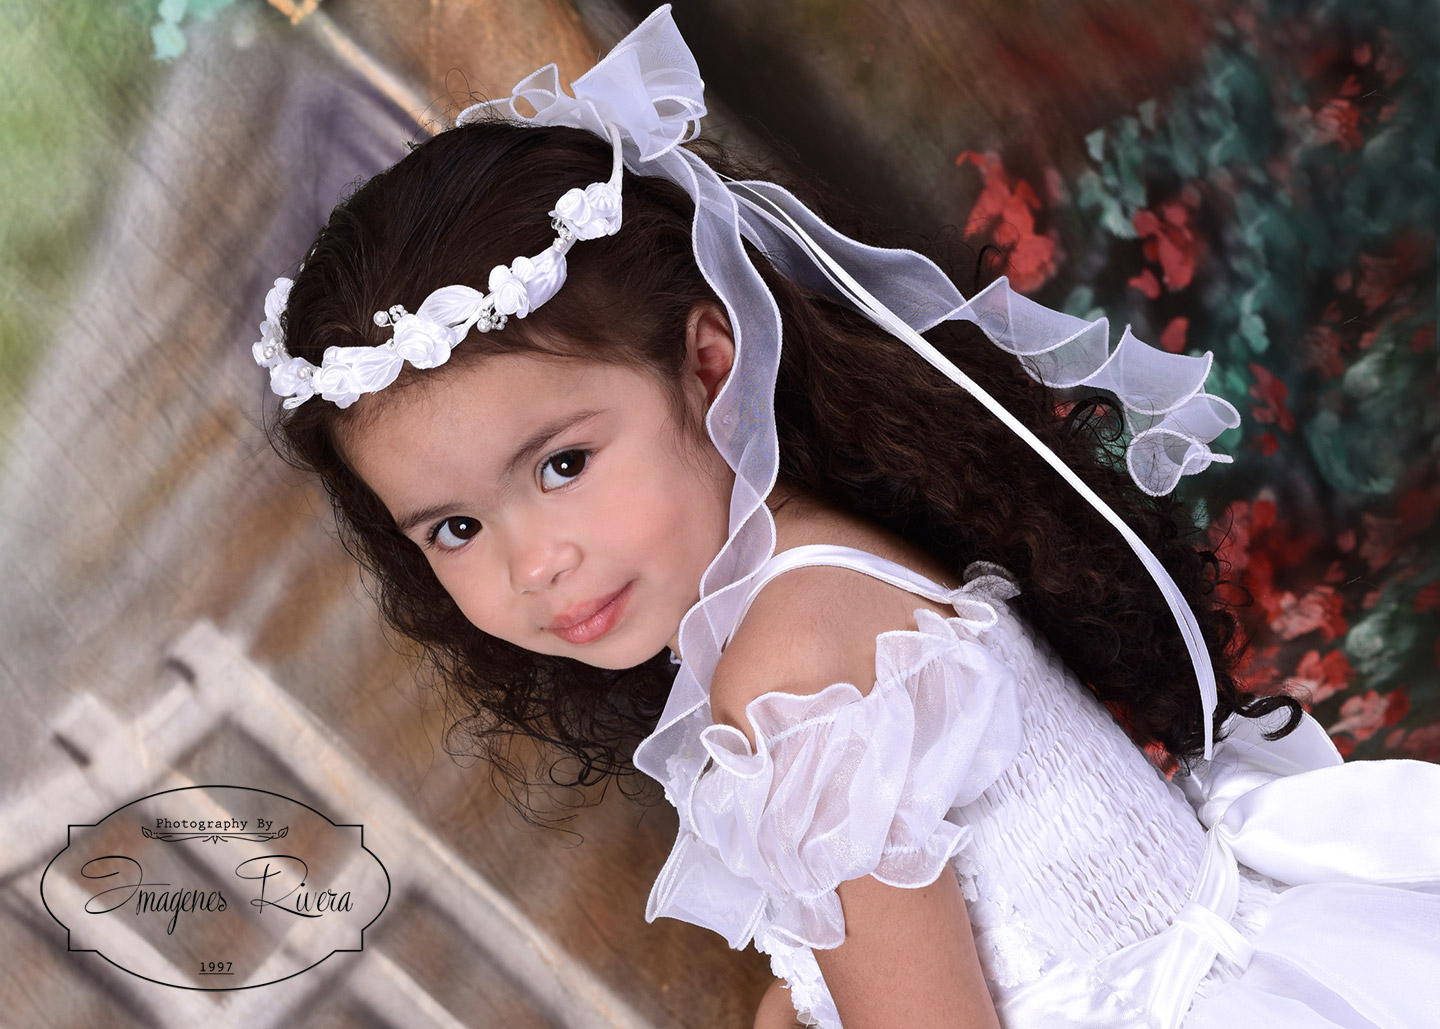 ♥ Pamela & Rolando, Christening Photography | Miami family photographer Imagenes Rivera ♥